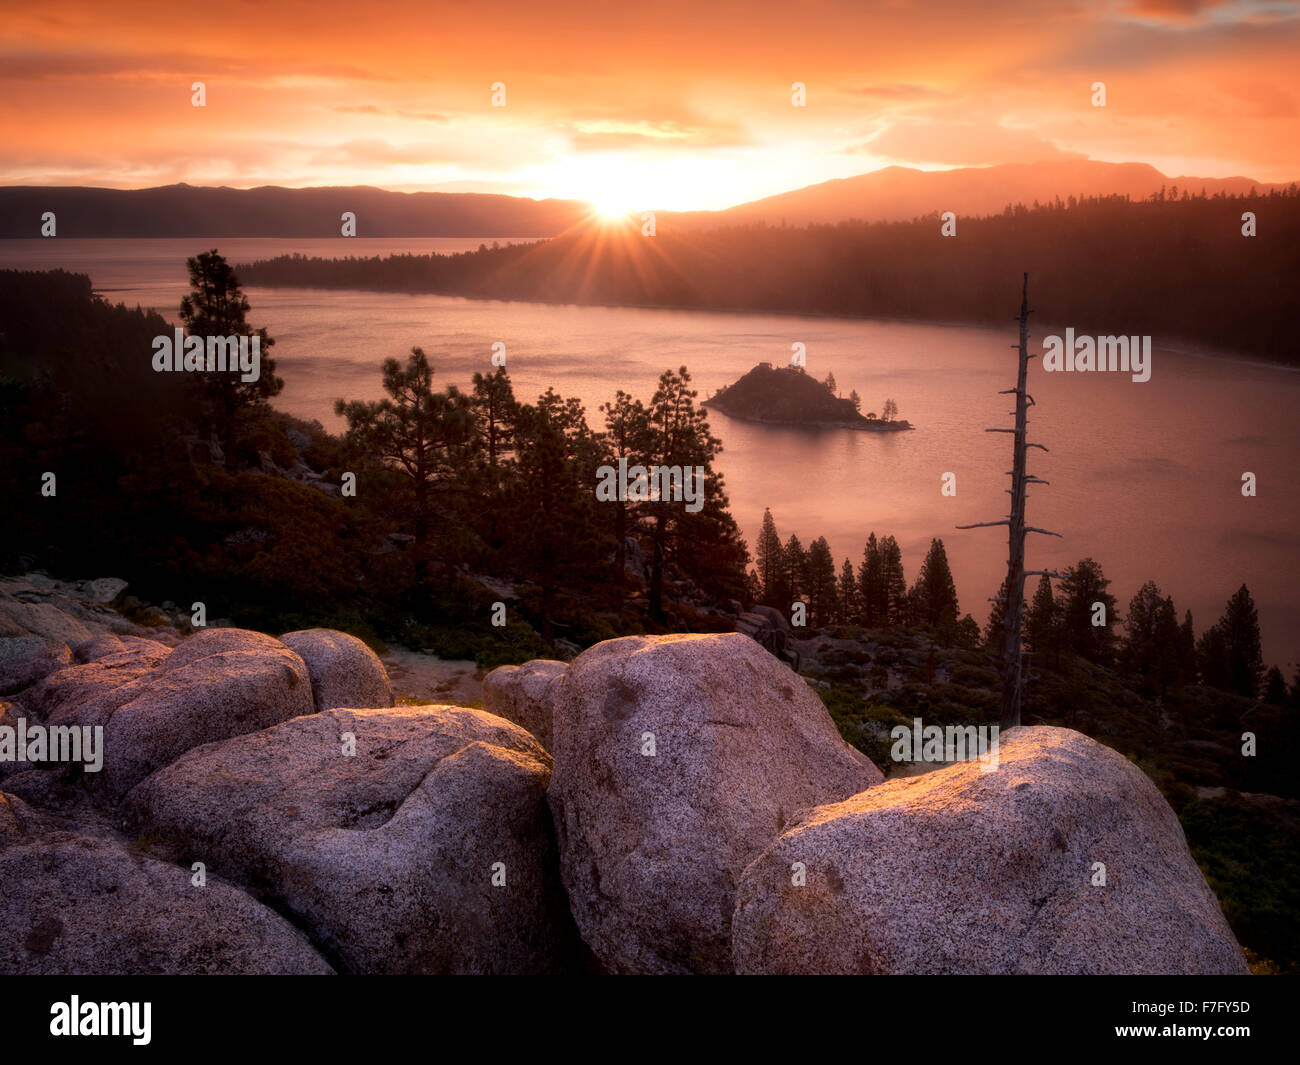 Sunrise and granite boulders at Emerald Bay, Lake Tahoe, California - Stock Image